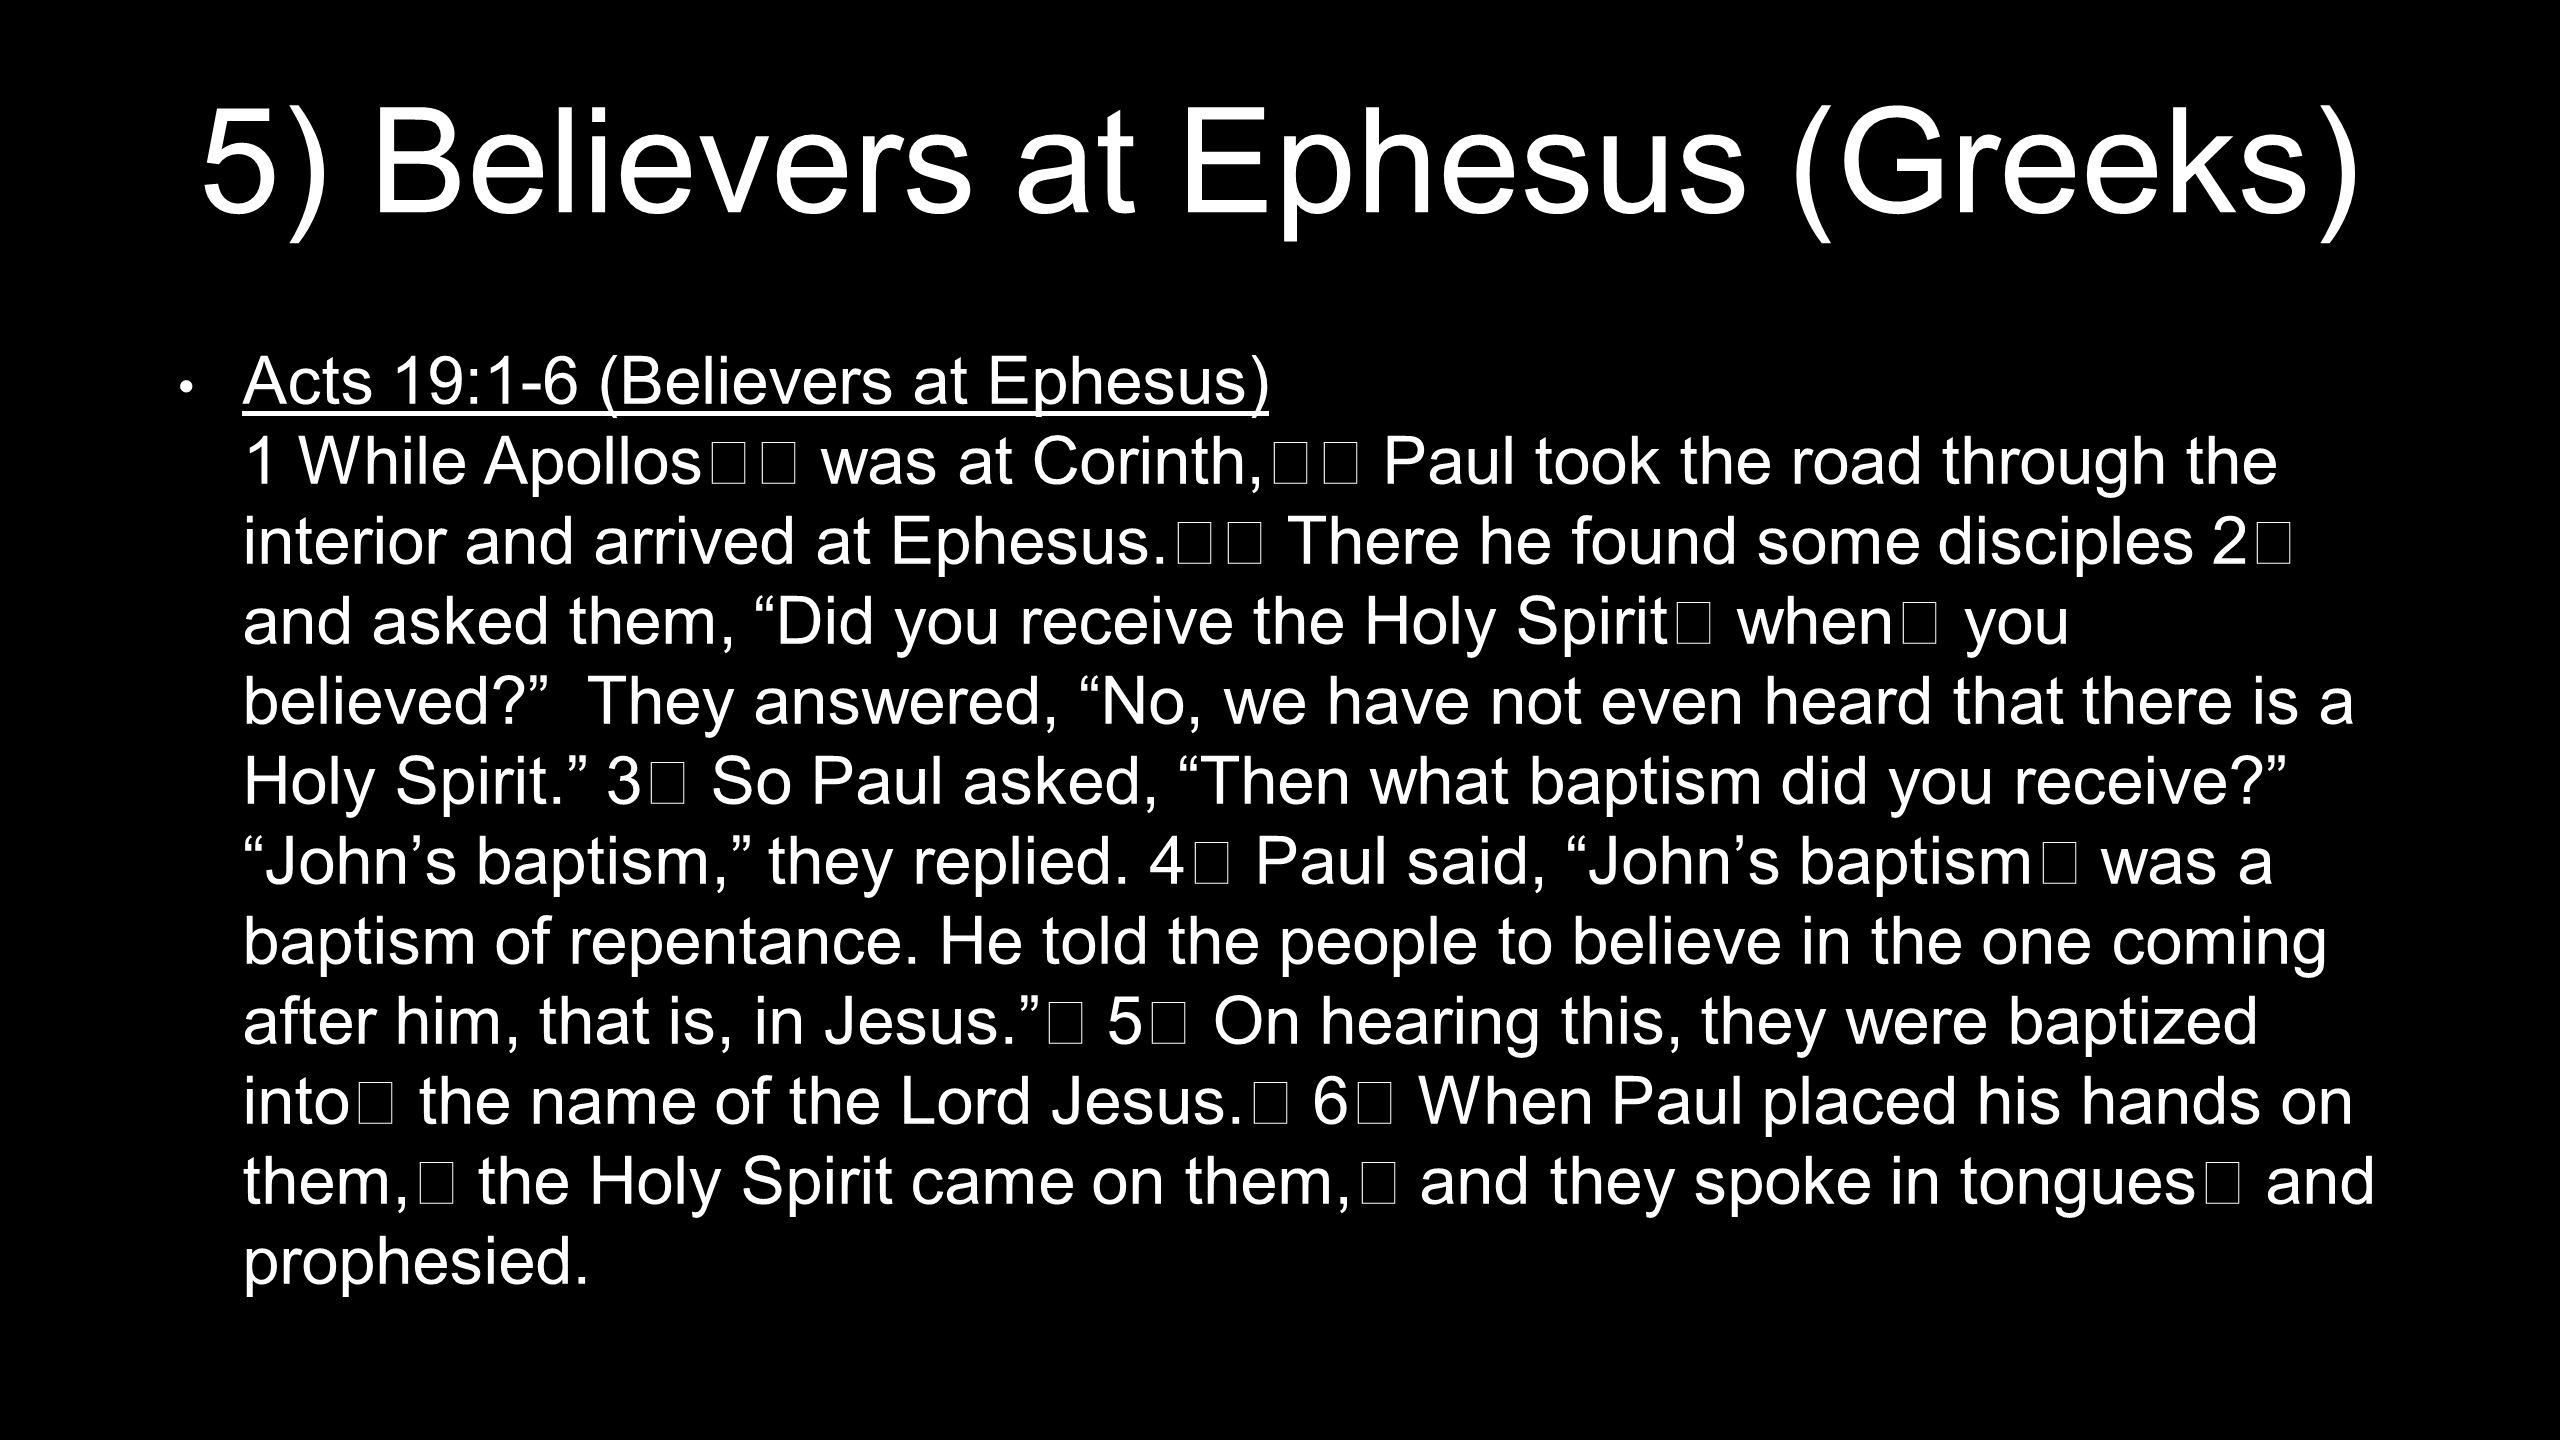 5) Believers at Ephesus (Greeks) Acts 19:1-6 (Believers at Ephesus) 1 While Apollos was at Corinth, Paul took the road through the interior and arrived at Ephesus.